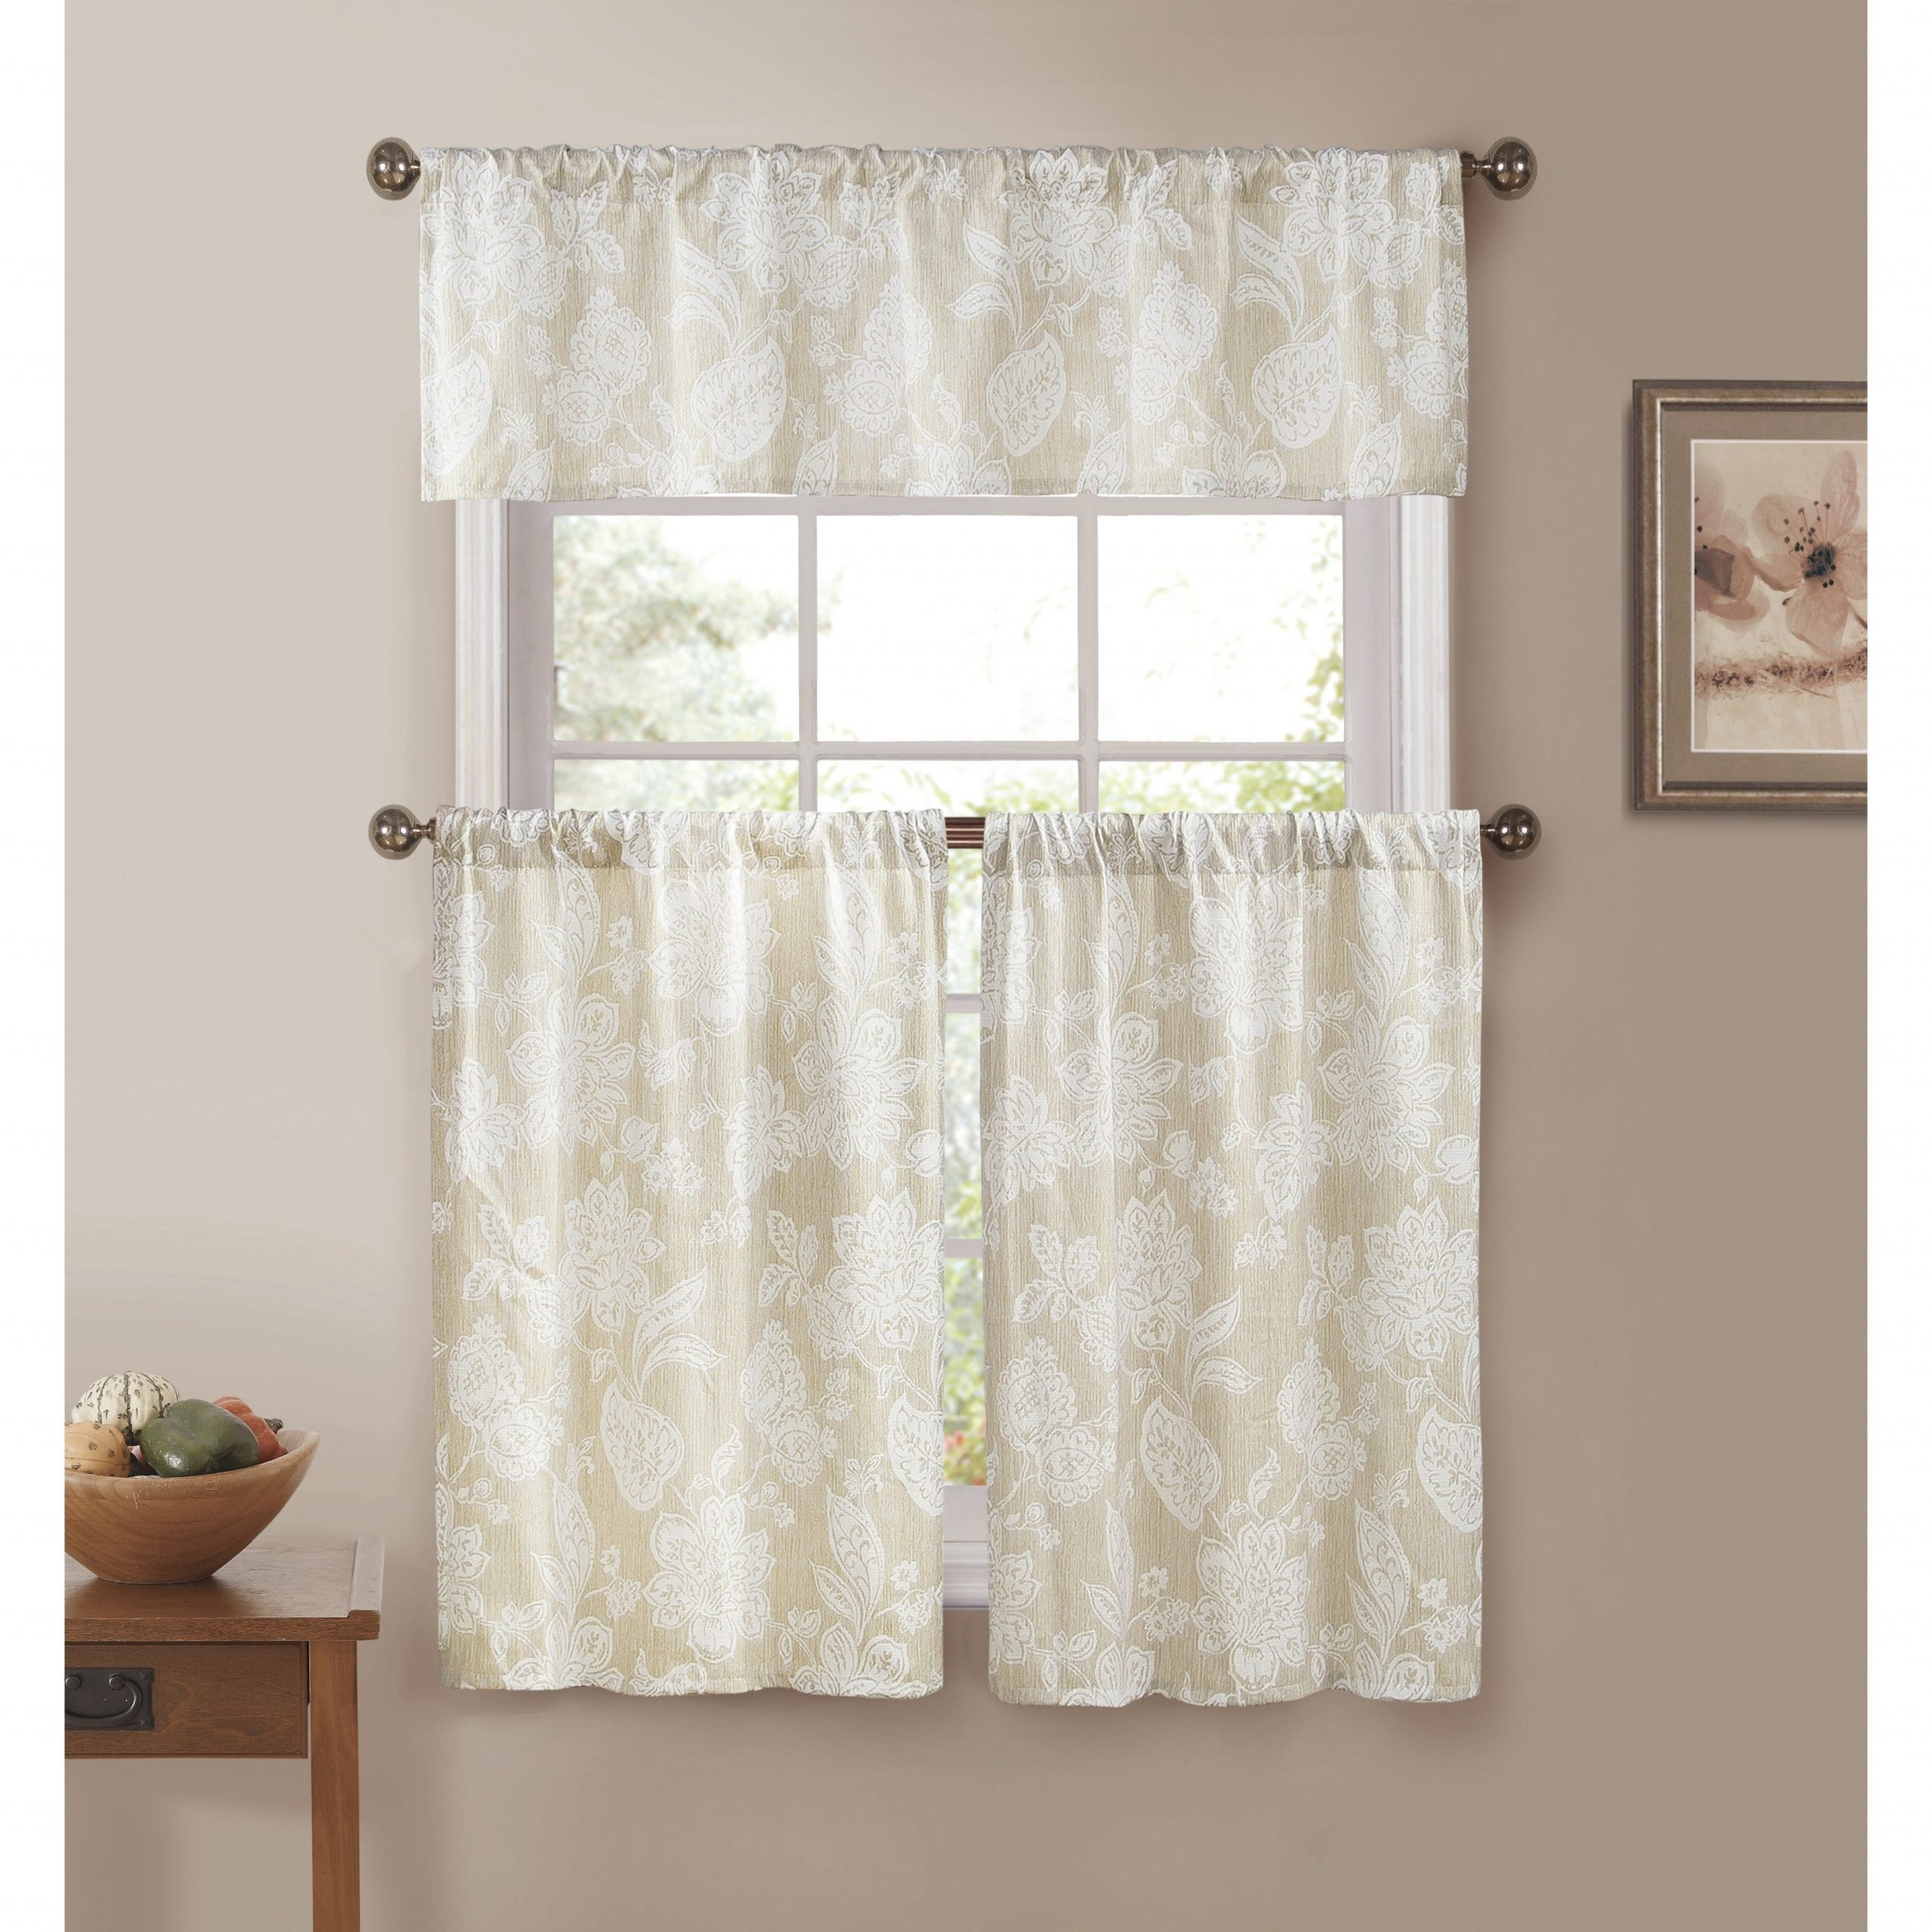 Ewva Linen Look 3 Piece Jacquard Pole Top Kitchen Curtain Set Regarding Scroll Leaf 3 Piece Curtain Tier And Valance Sets (View 8 of 20)